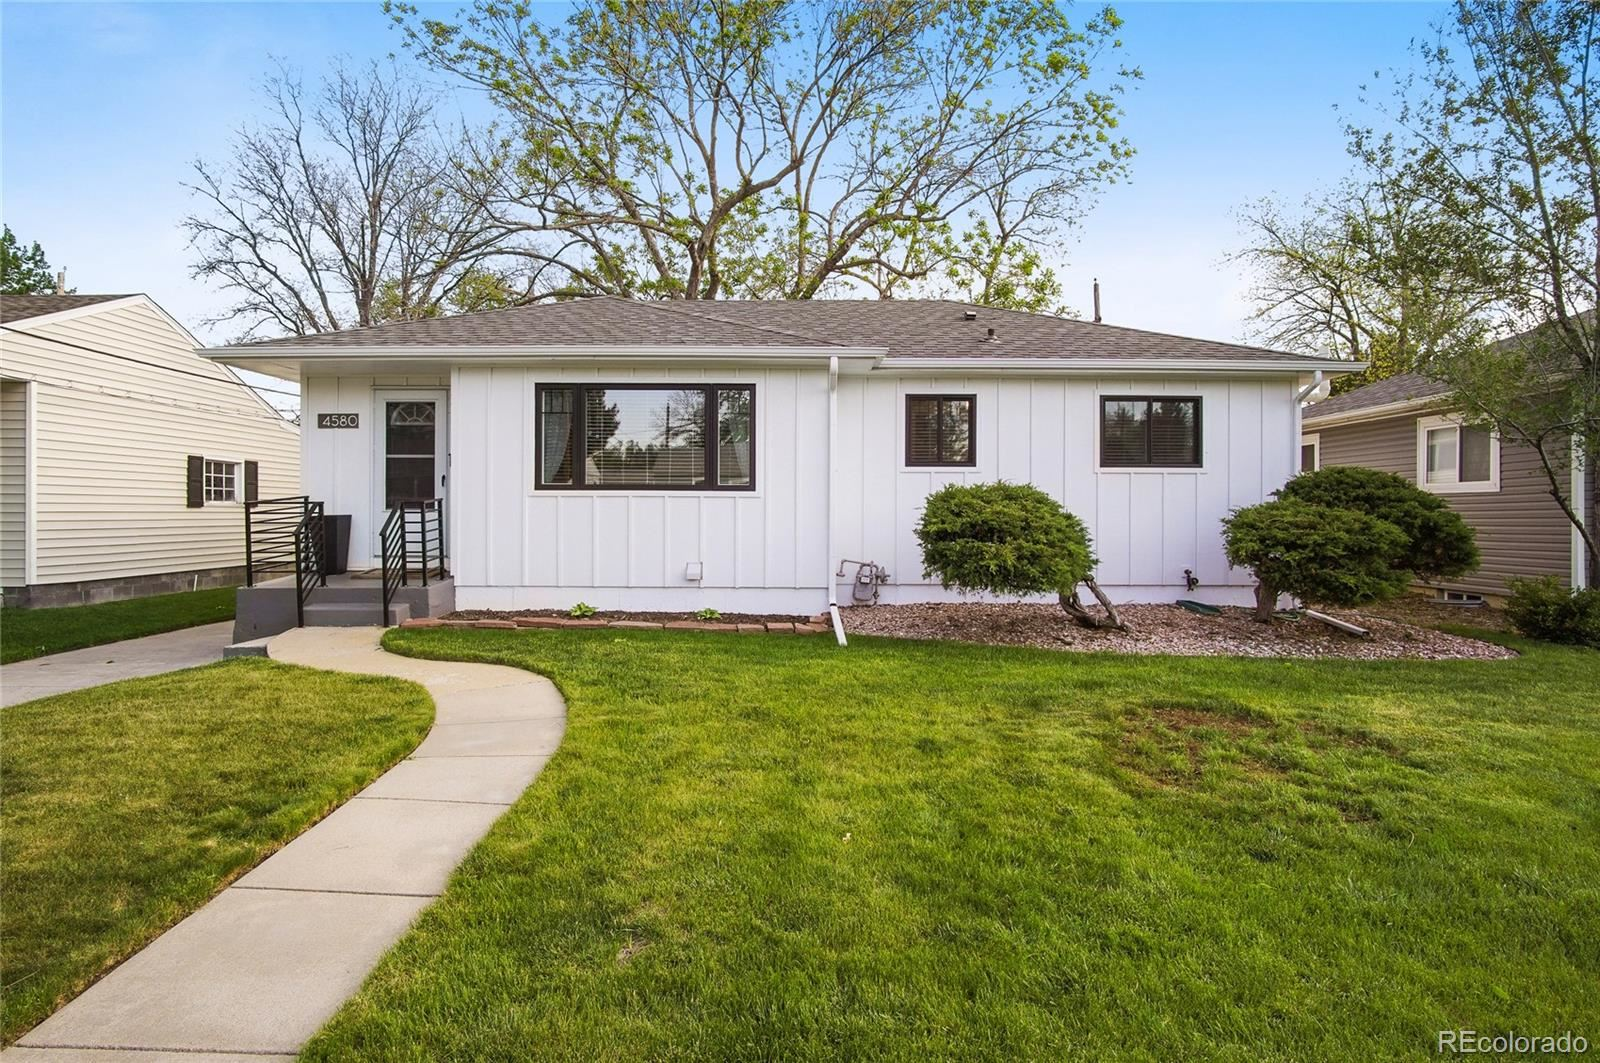 4580 E Bails Place, Denver, CO 80222 - #: 5920867